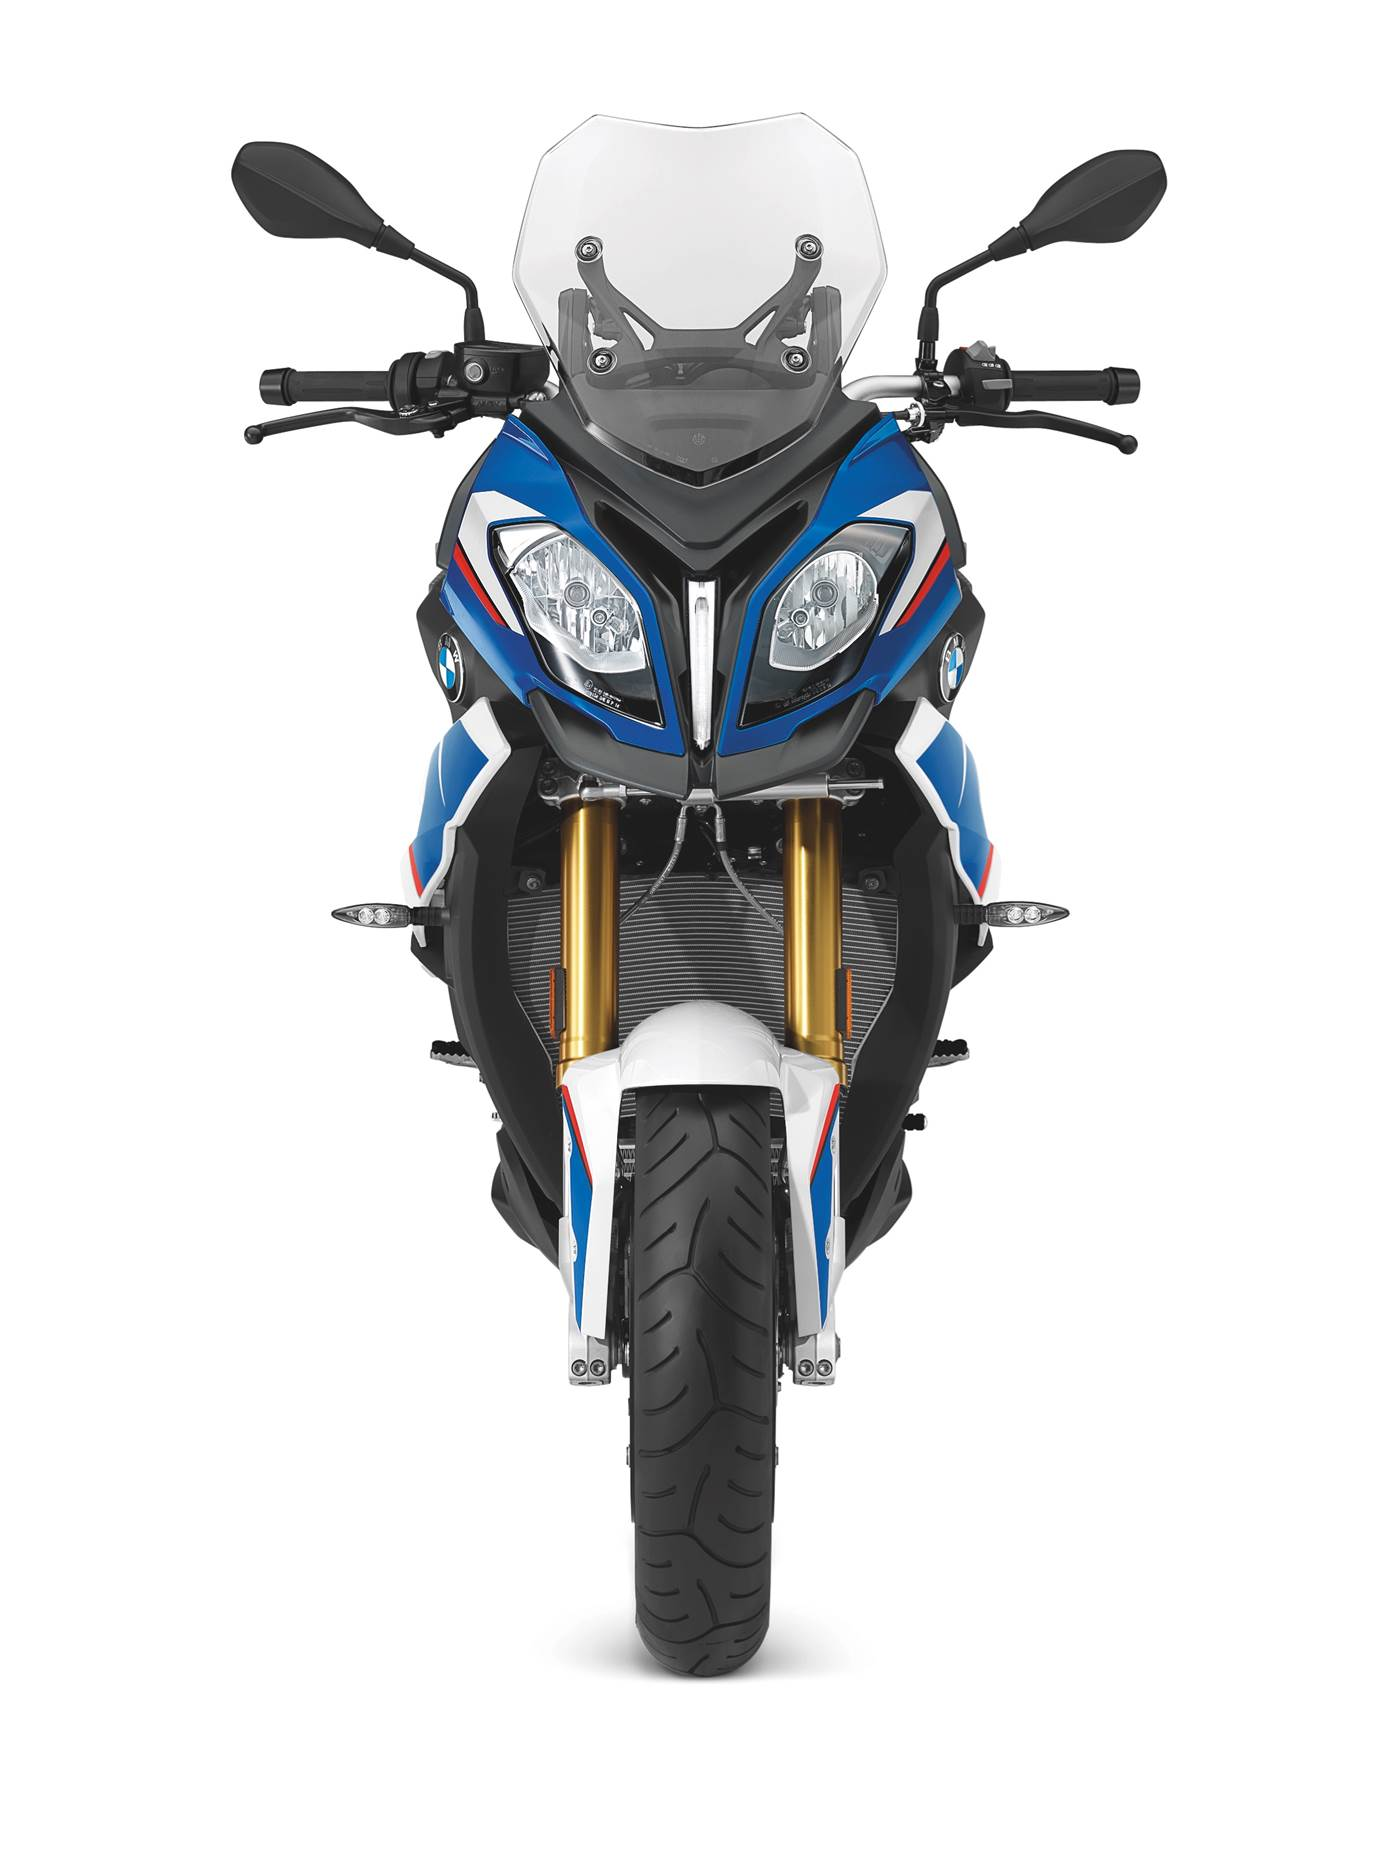 BMW S 1000 XR Adventure mc